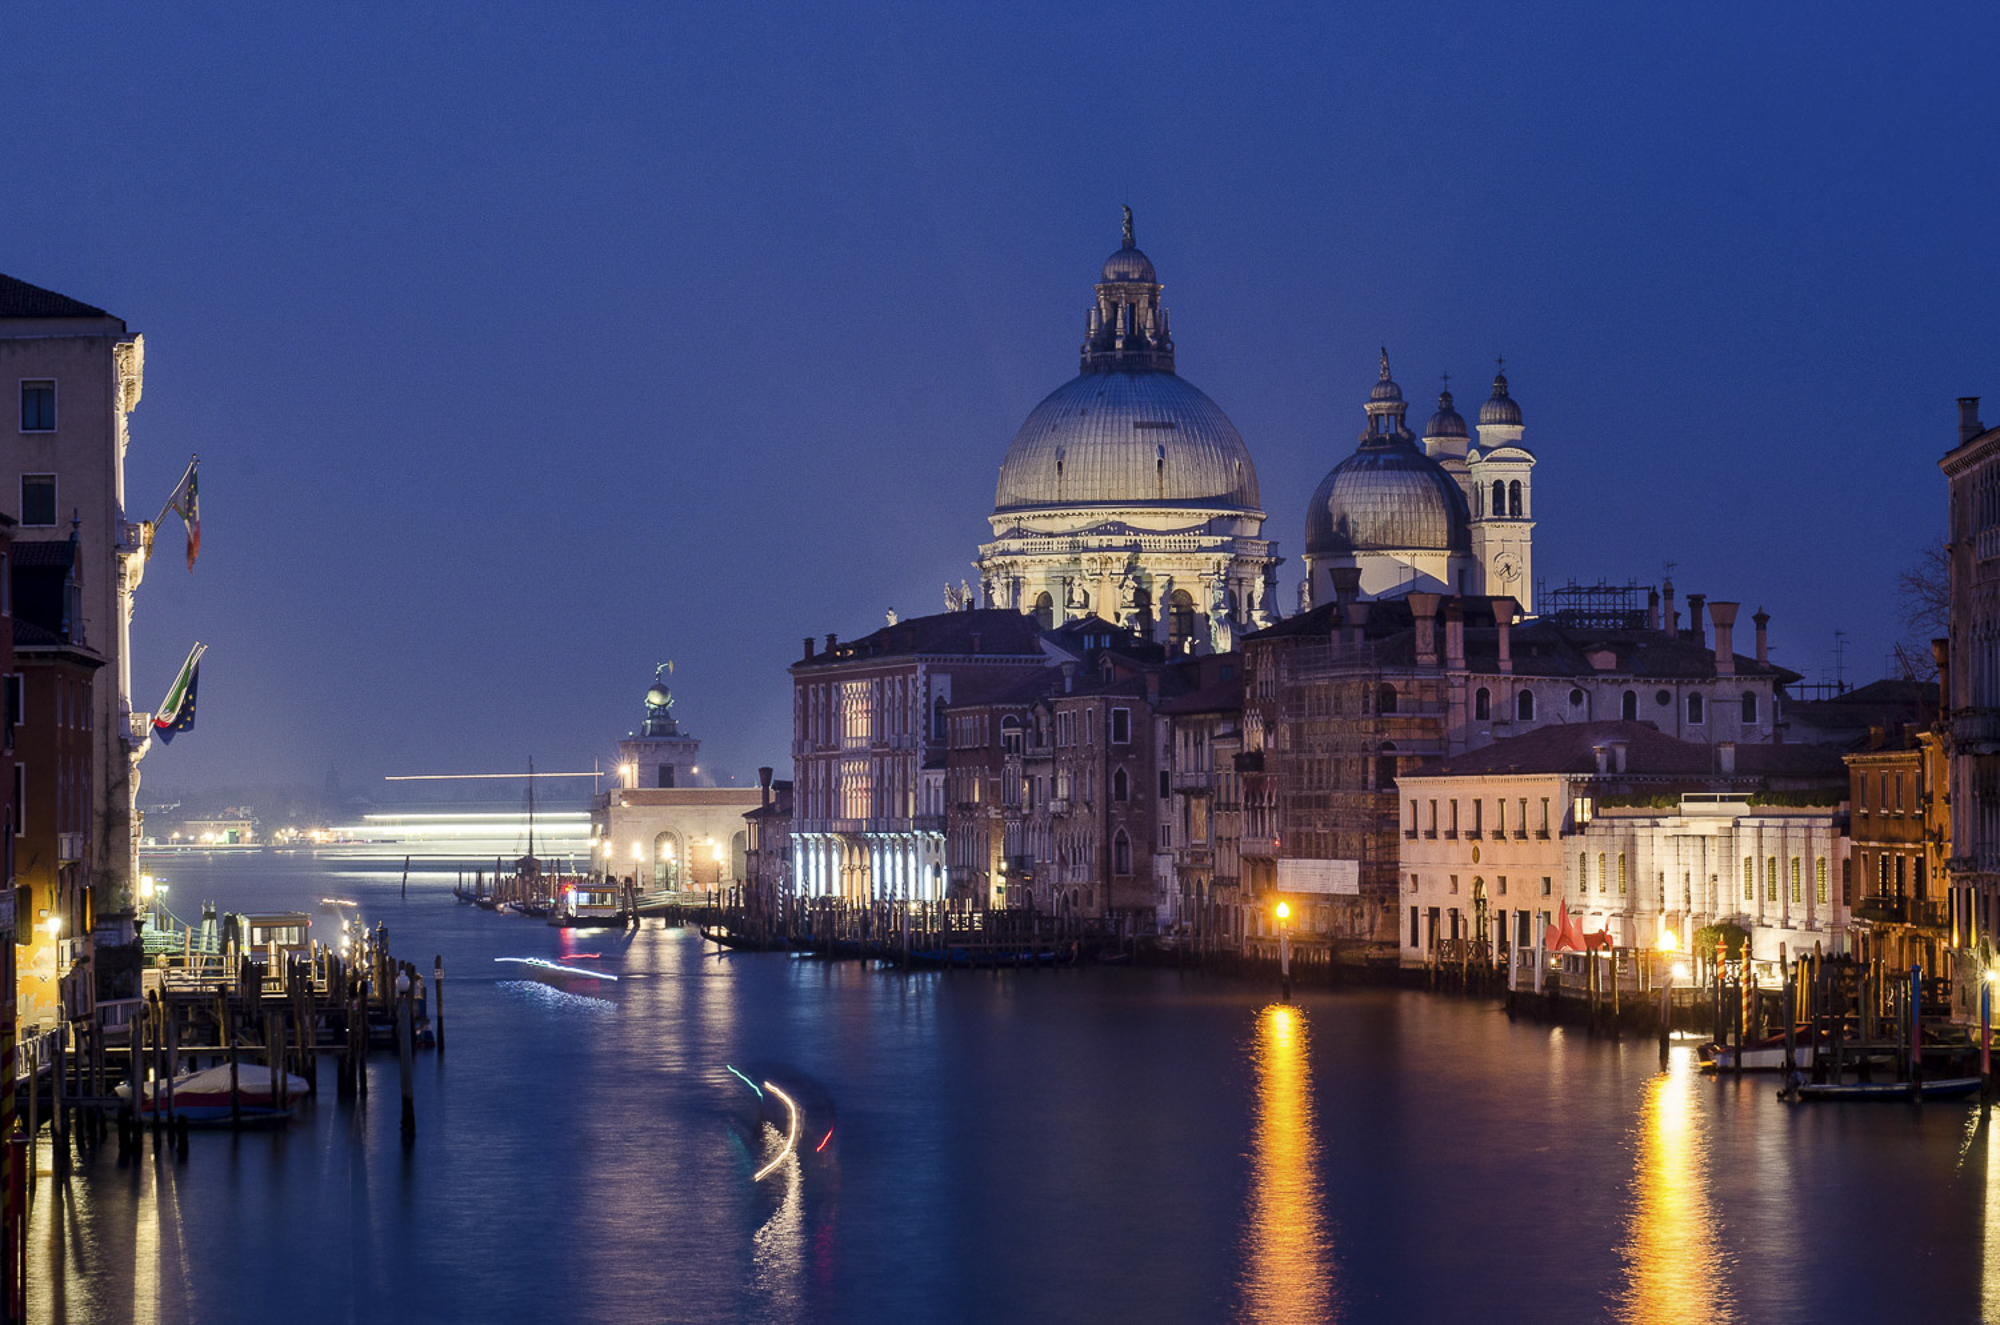 venice-night-photo-tour-001.jpg